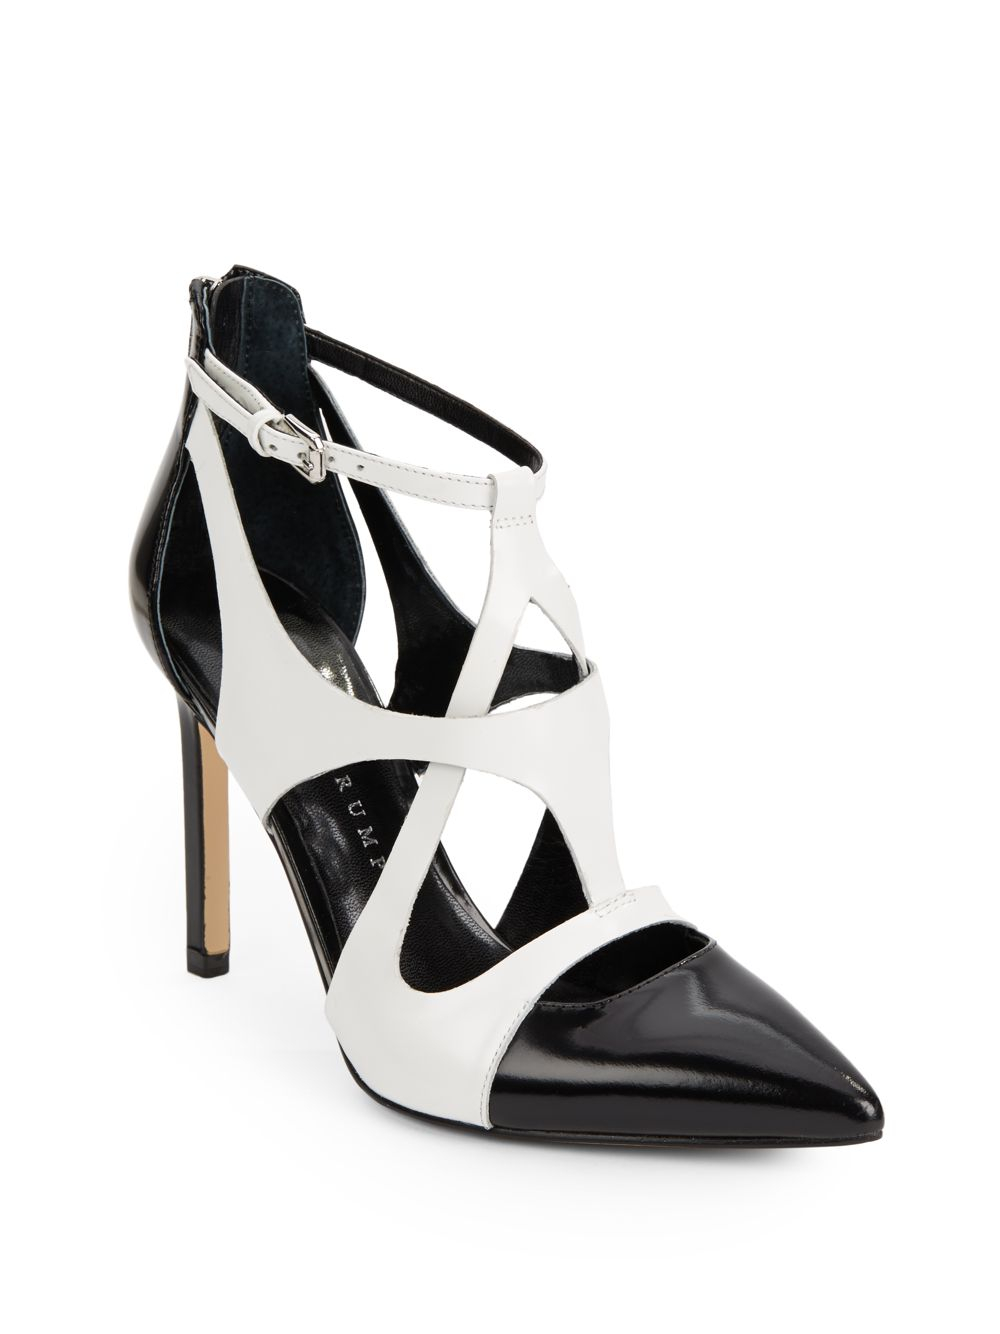 8ab559c16b9 Lyst - Ivanka Trump Chatty Colorblock Leather Cutout Pumps in Black